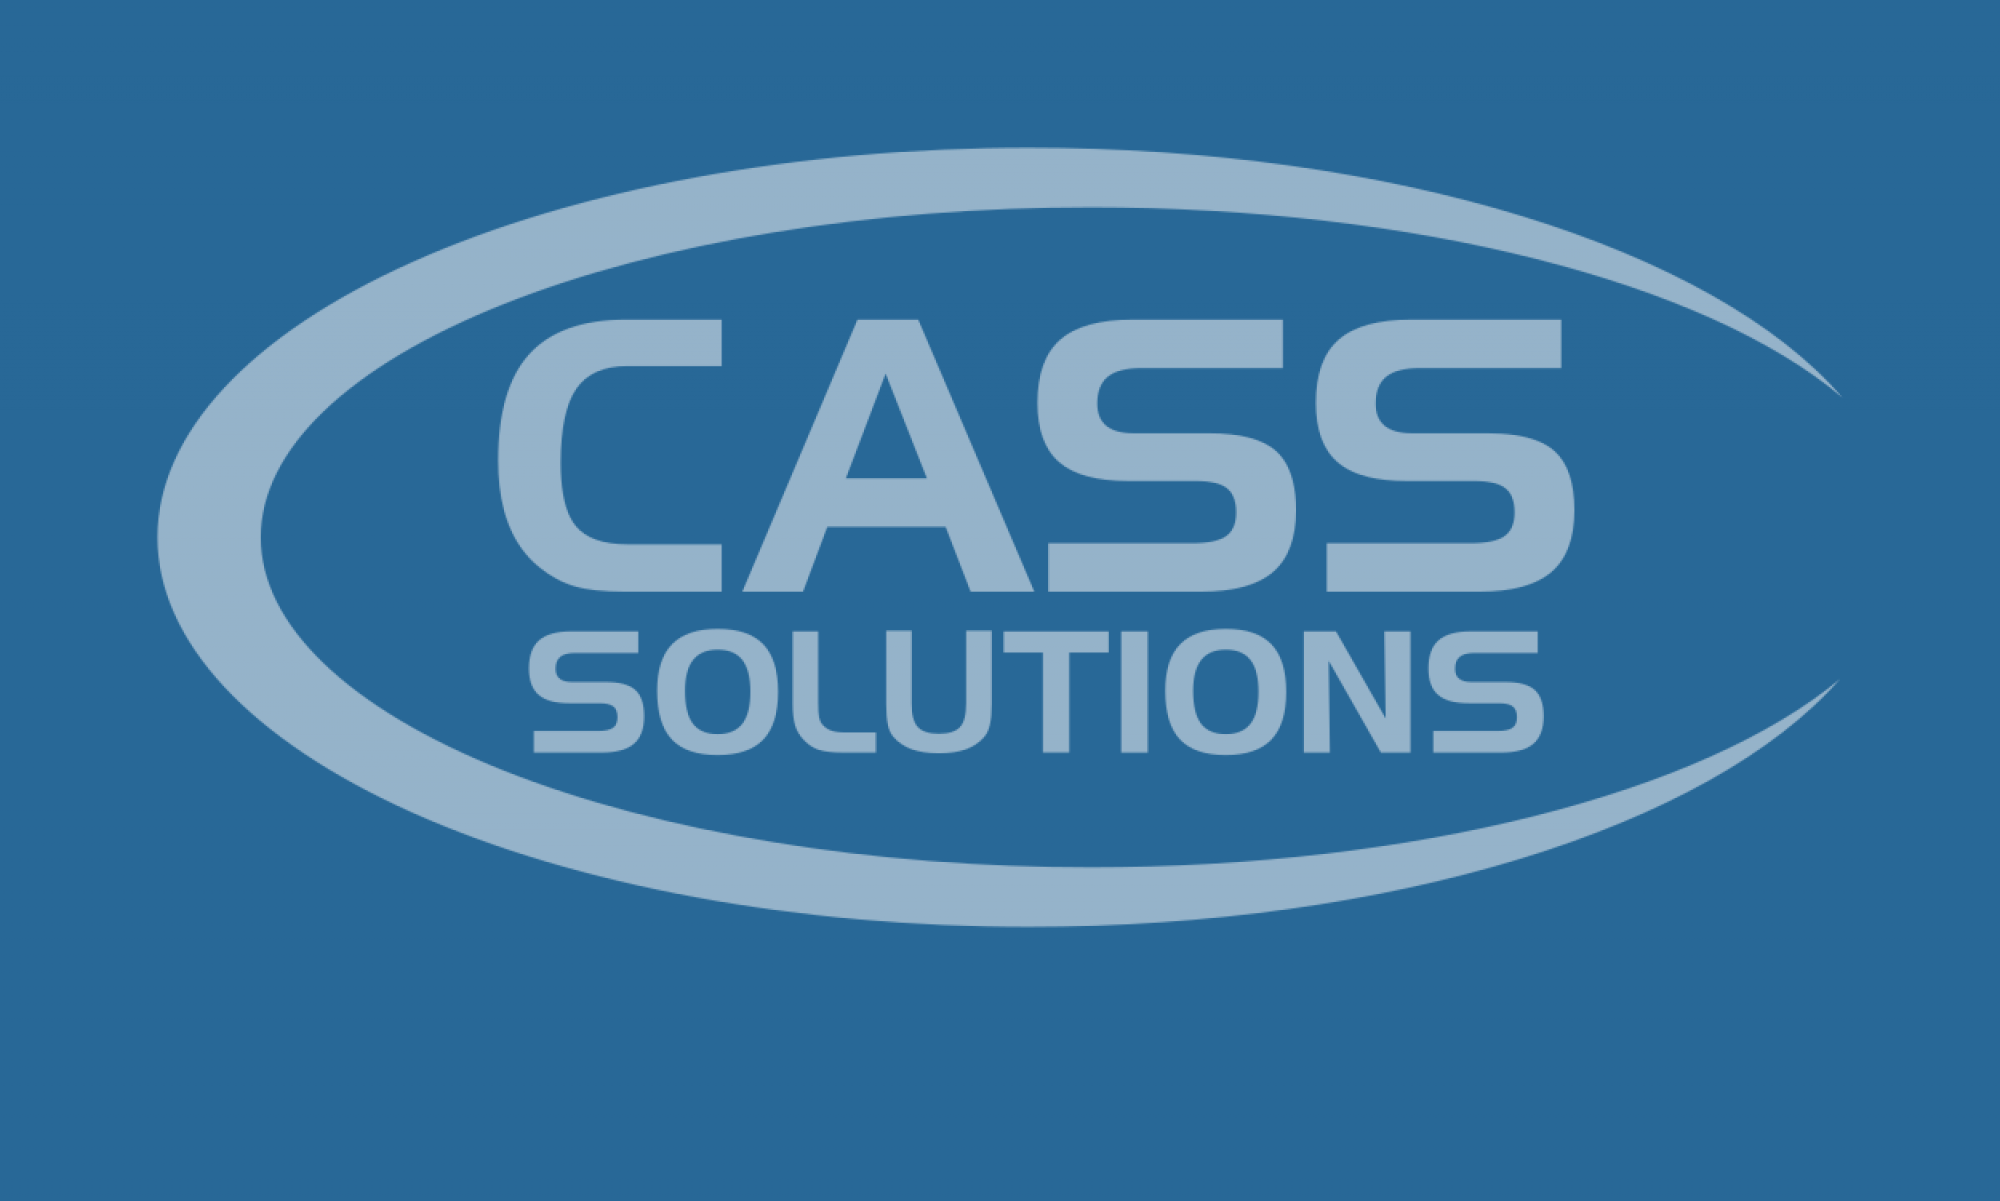 CASS Solutions, LLC